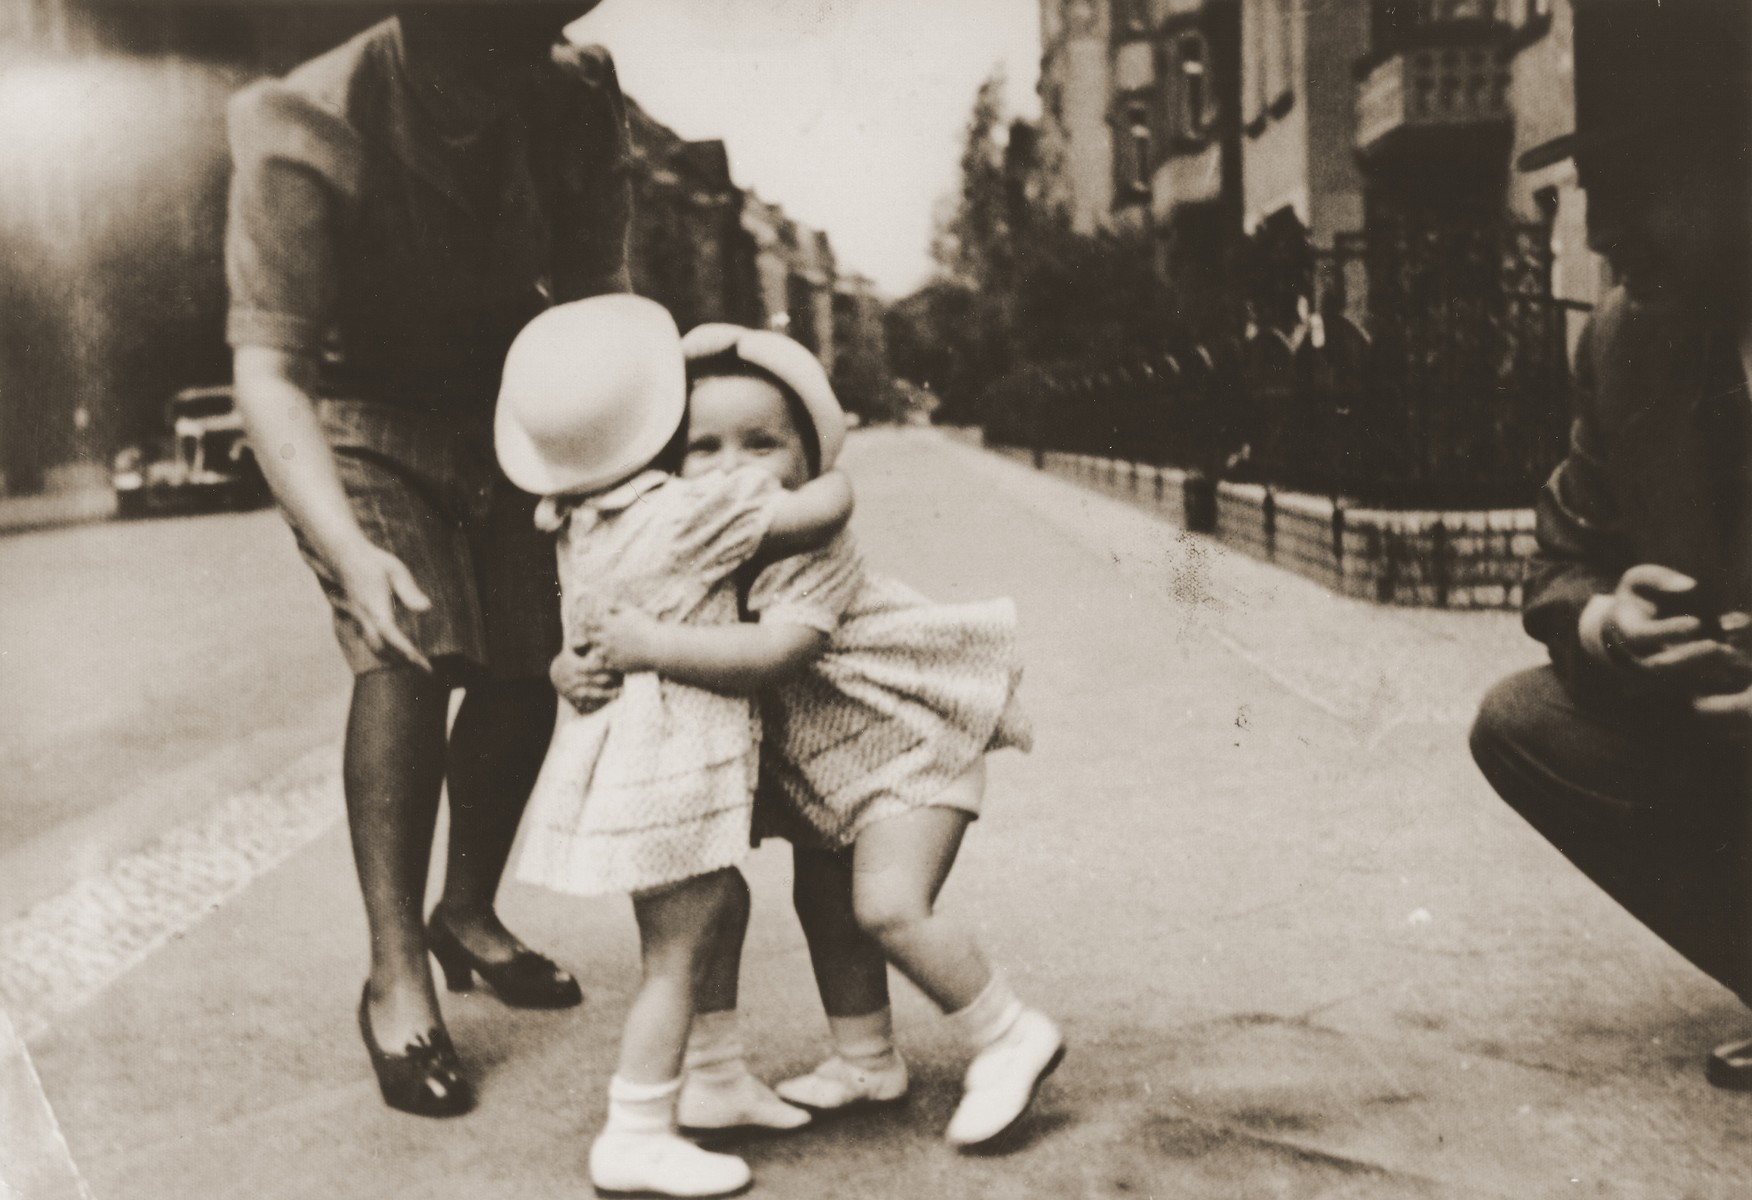 Ellinor and Evelyn Perl hug each other on a Berlin street while their parents look on.  Ellinor (now Eleanor) and Evelyn Perl, twin sisters were born in Berlin in 1938 to Ernst and Frieda (nee Heimann) Perl.  The family fled to Lisbon via Paris and succeeded in sailing to the United States on board the SS Nyassa on May 25, 1941.  They settled in New York where the girls attended a pre-school for Jewish refugee children.